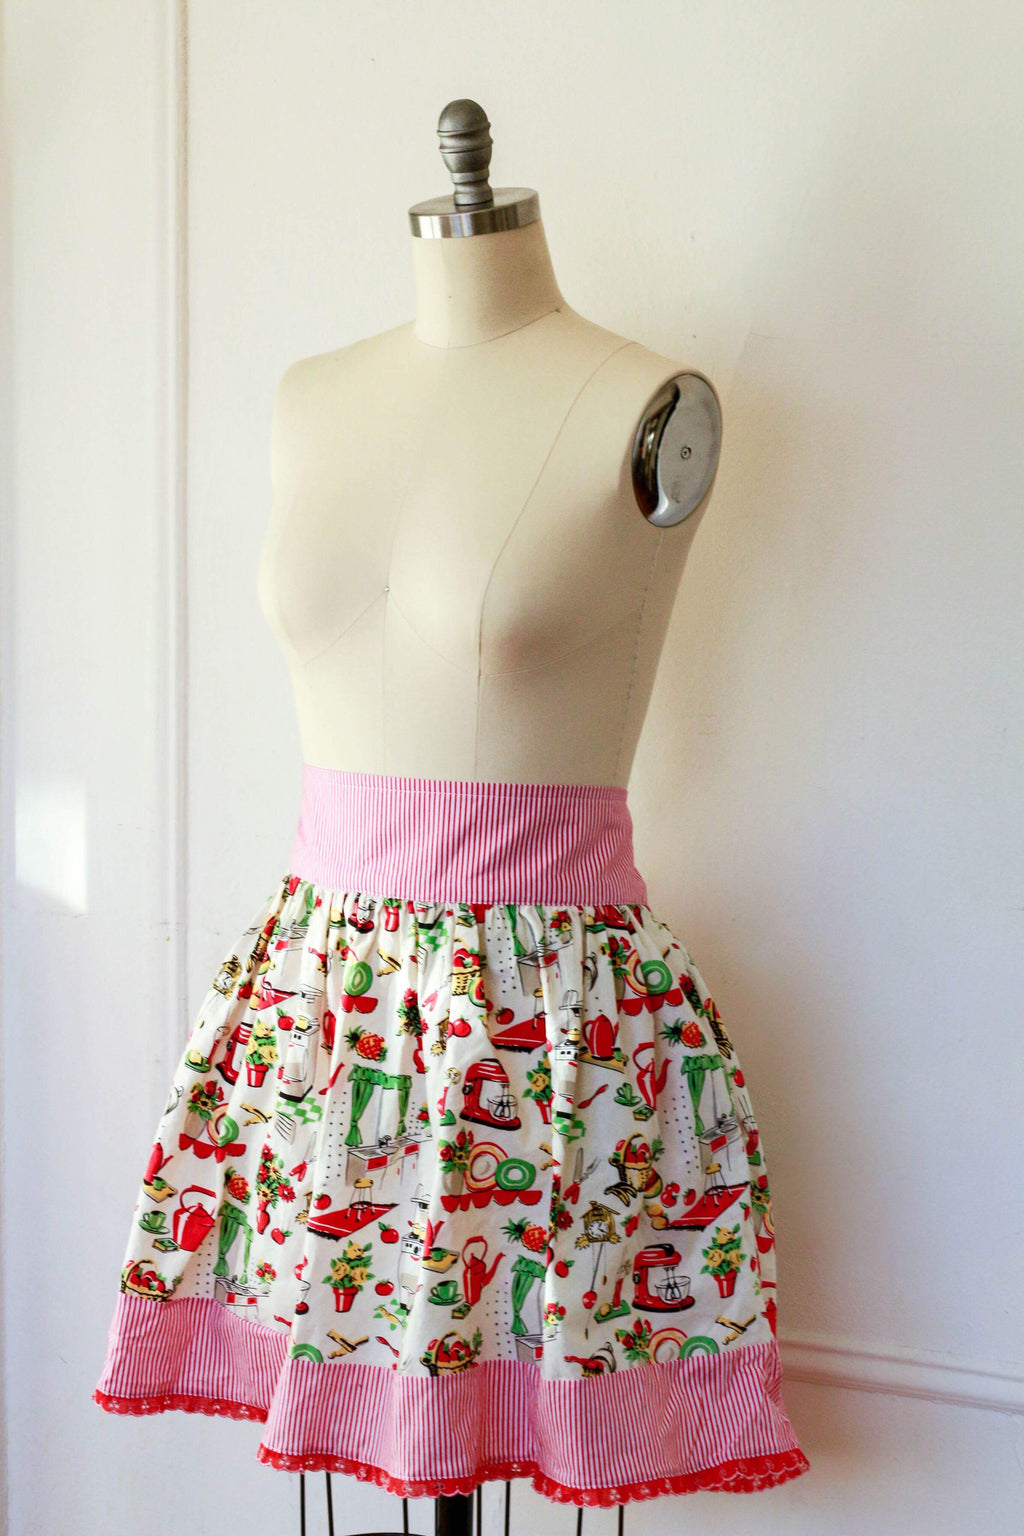 Vintage Kitchen Print Dirndl Skirt | Ready to Wear Size 16